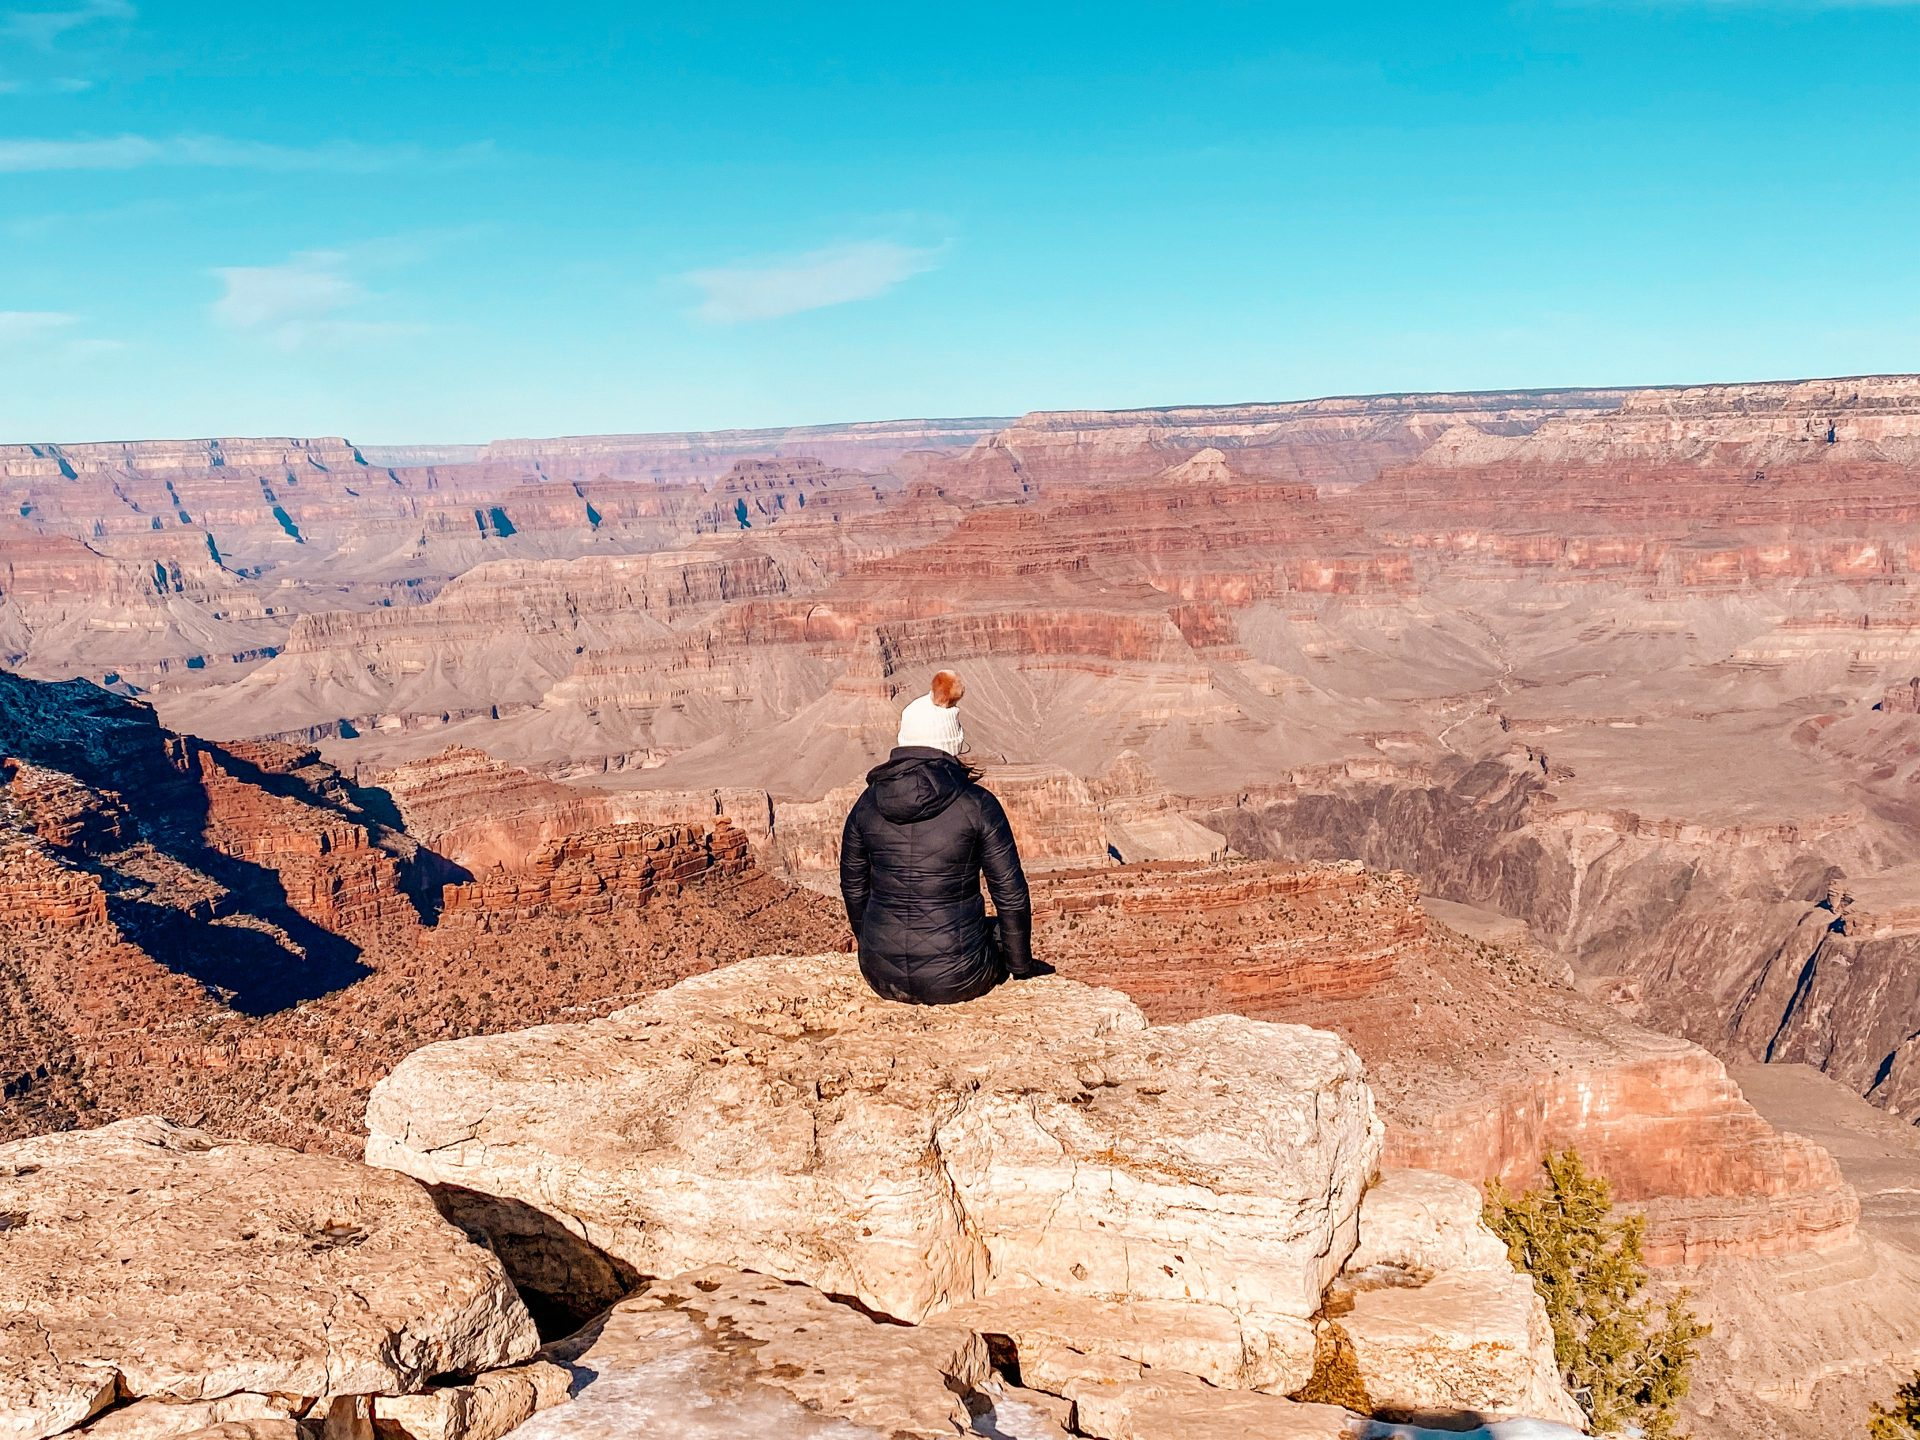 Woman looking out into the vastness of the Grand Canyon in Arizona.